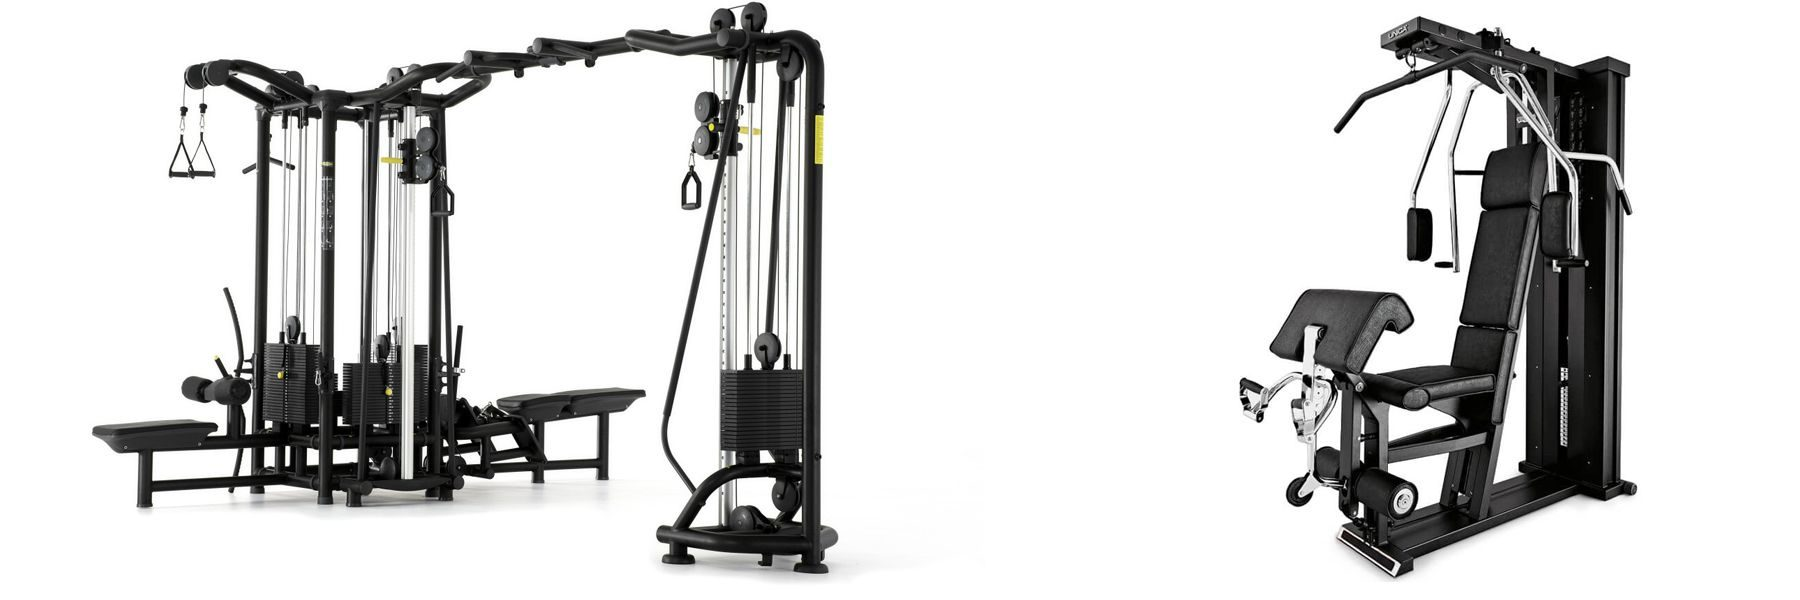 multigym technogym